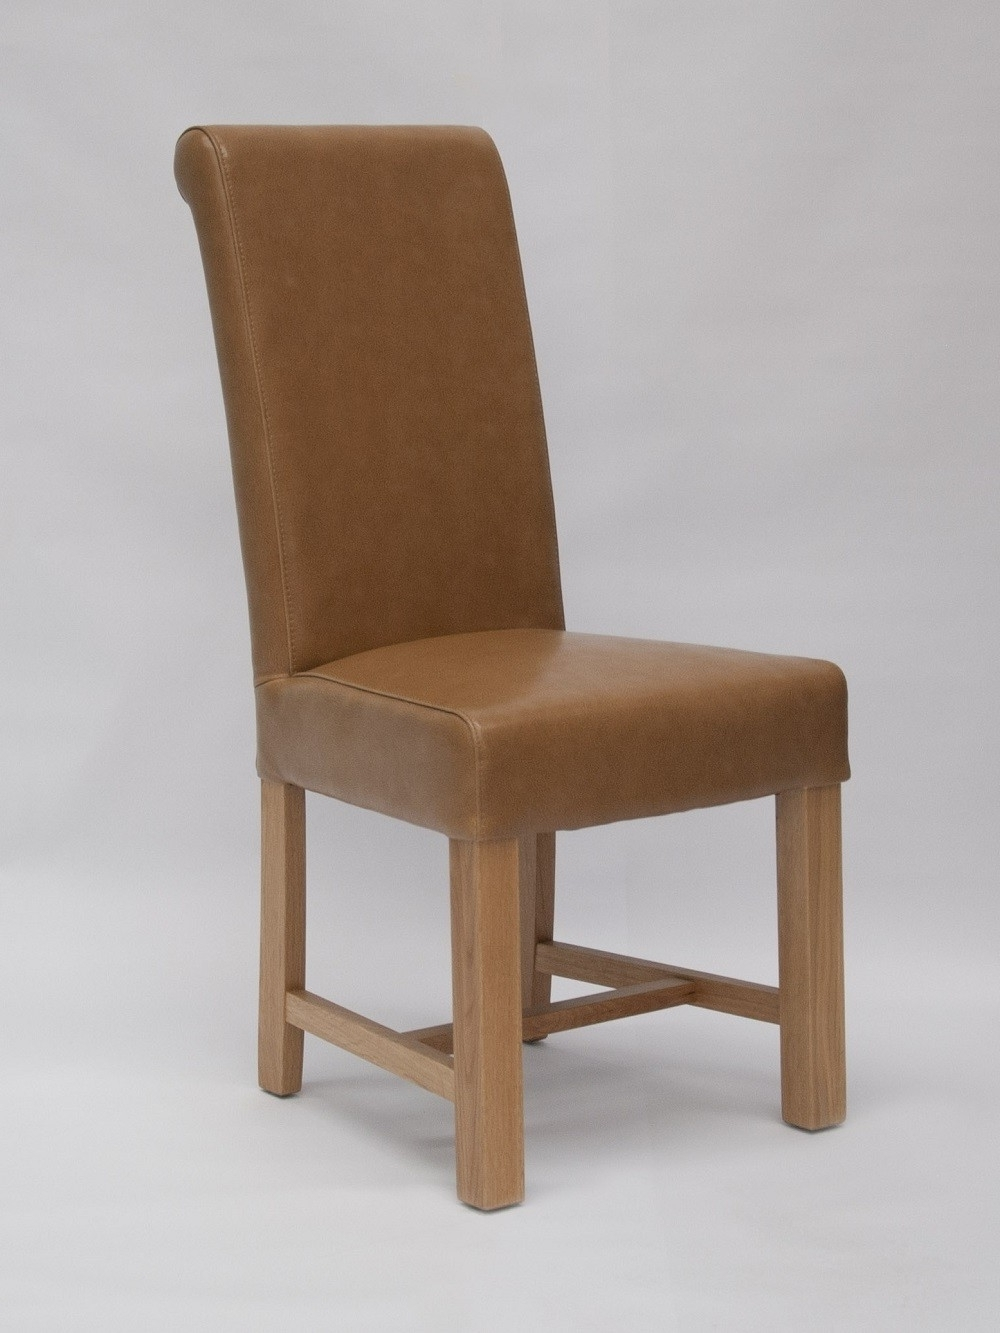 Oak Furniture Uk Within Oak Leather Dining Chairs (View 14 of 25)